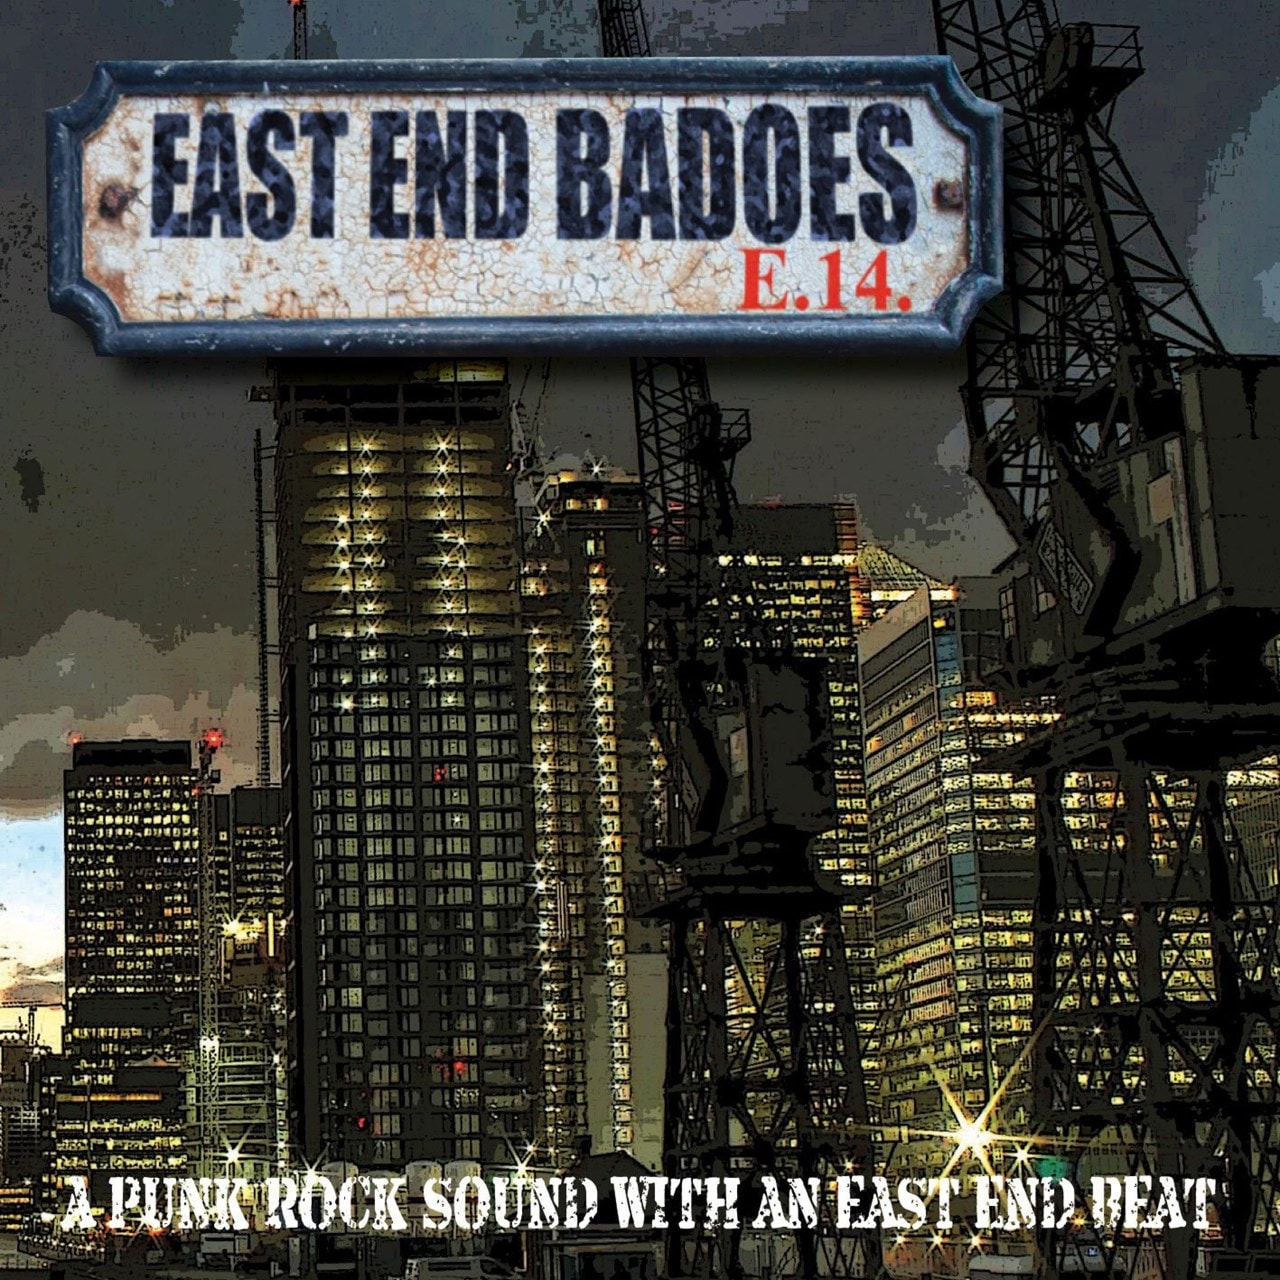 A Punk Rock Sound With an East End Beat - 1